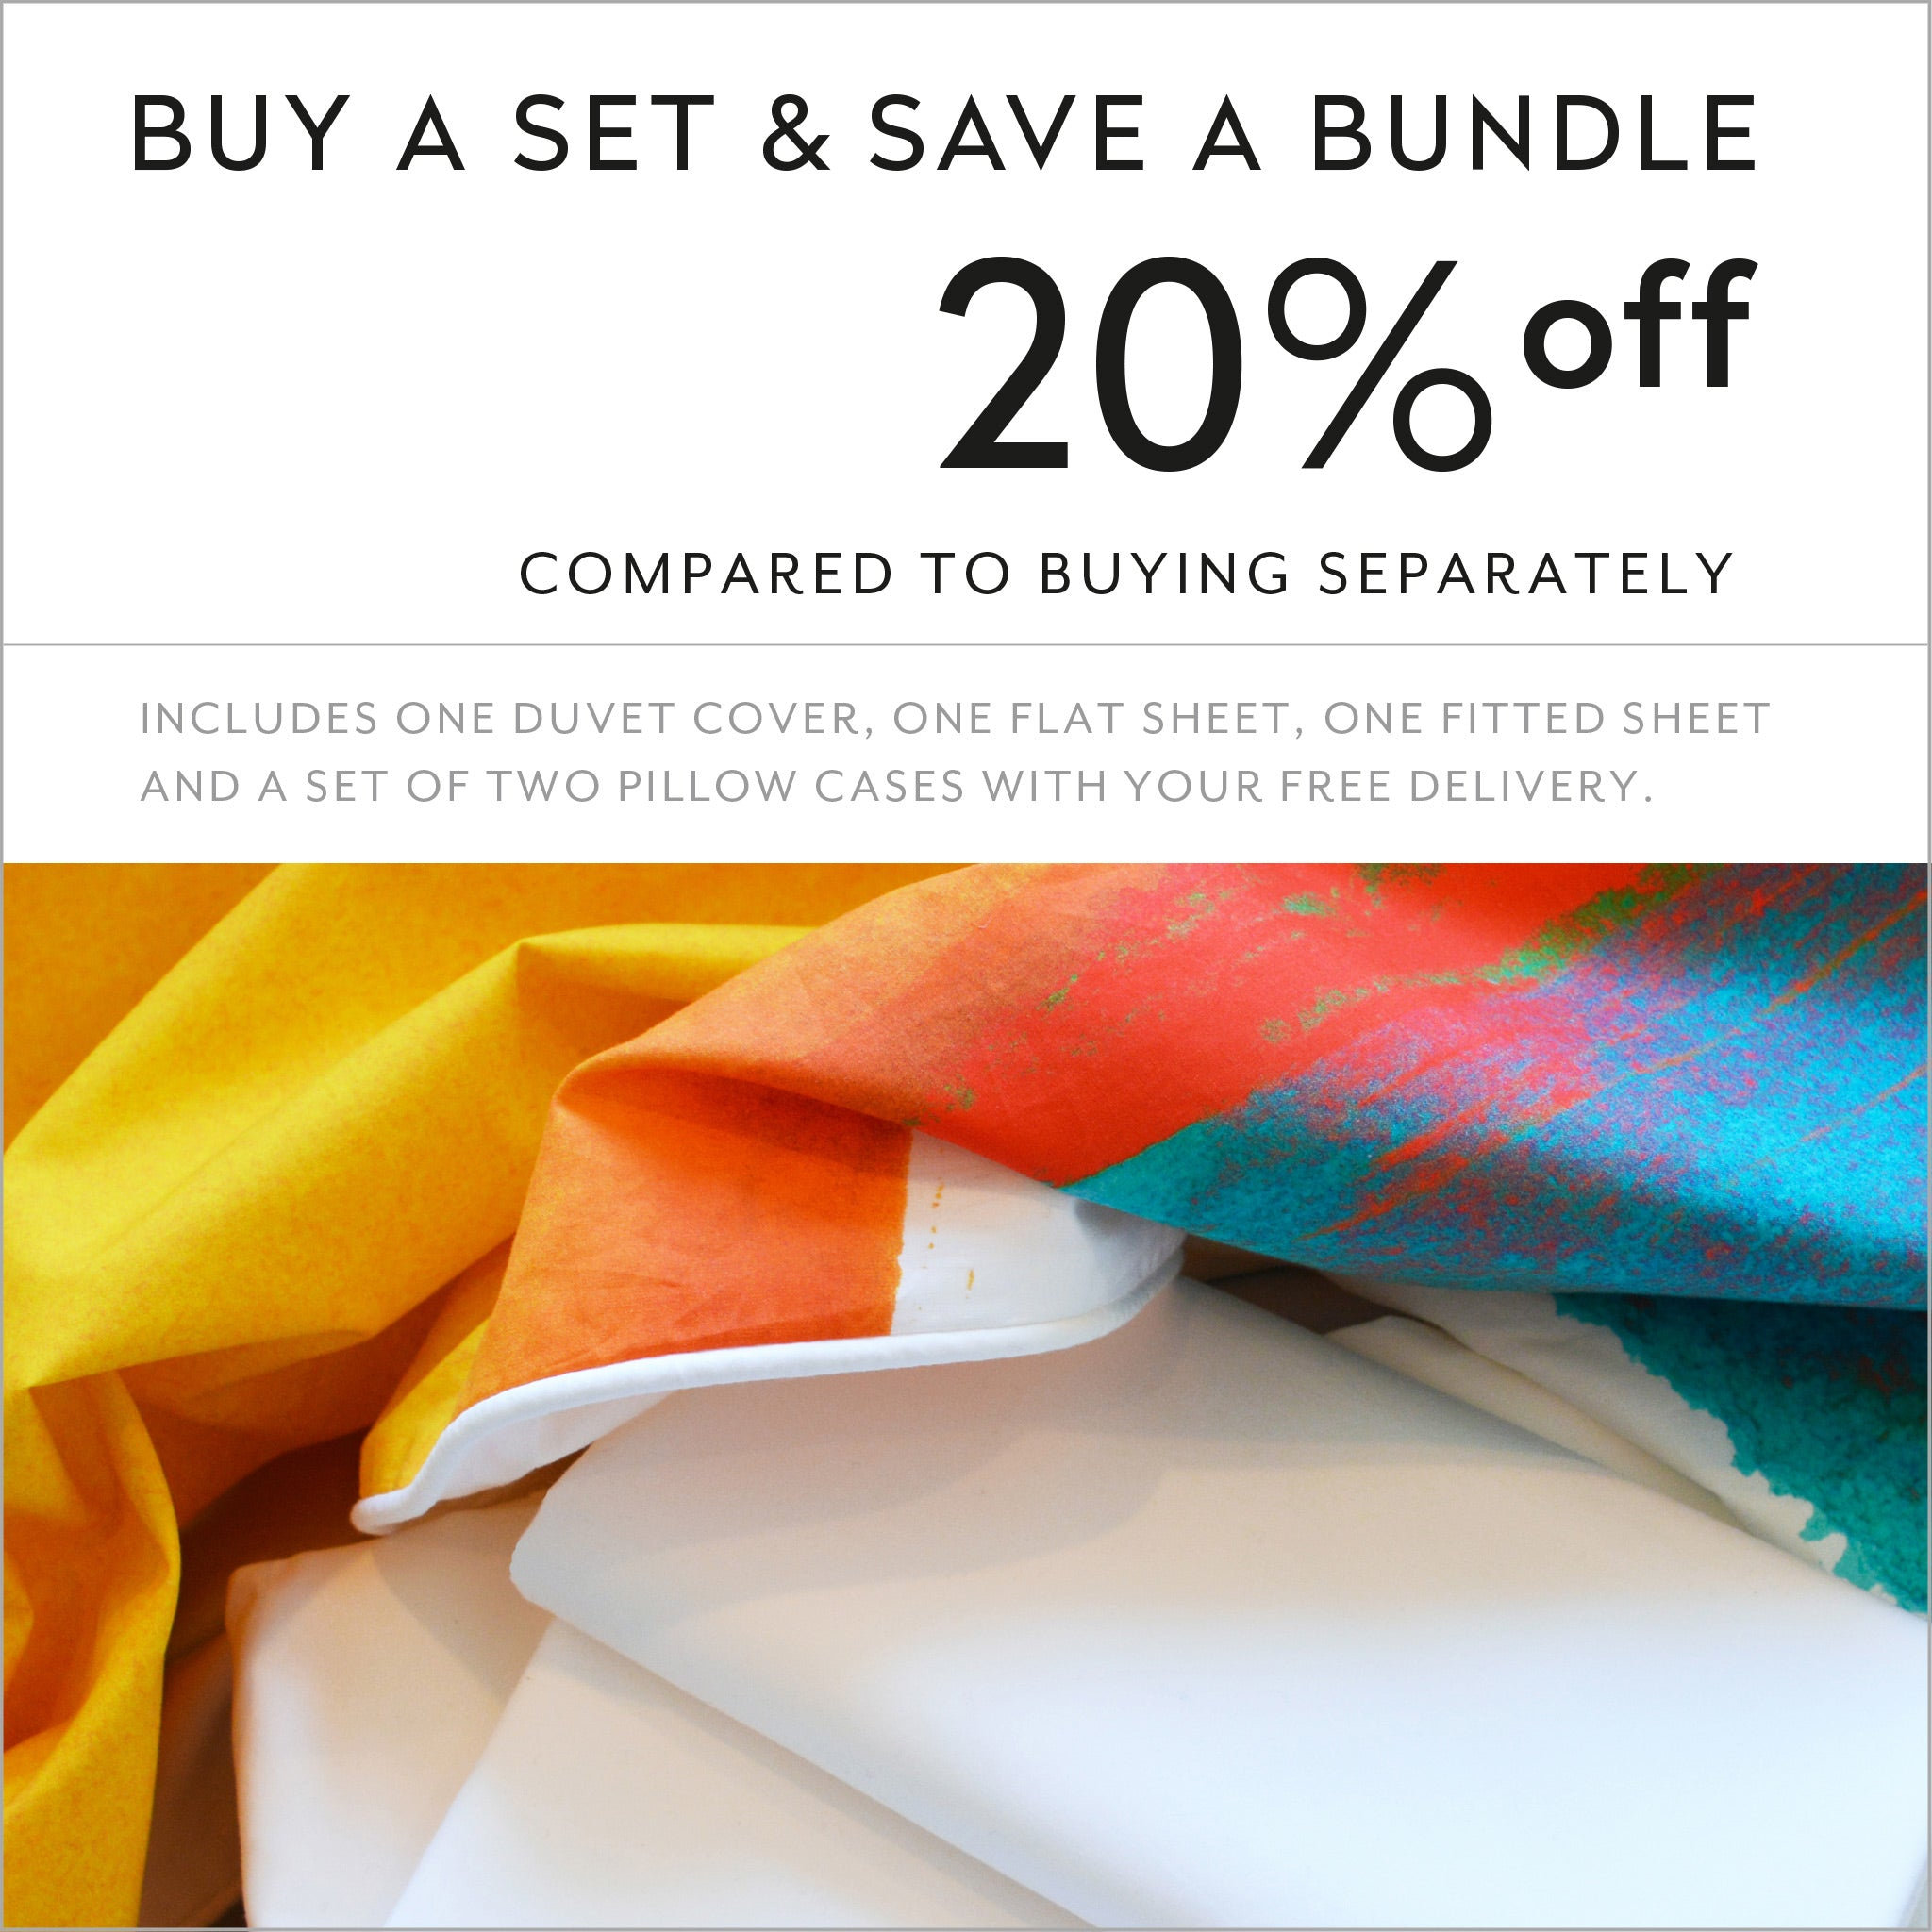 ZayZay-luxury-linen-sets-save-a-bundle-Moroccan-Monday